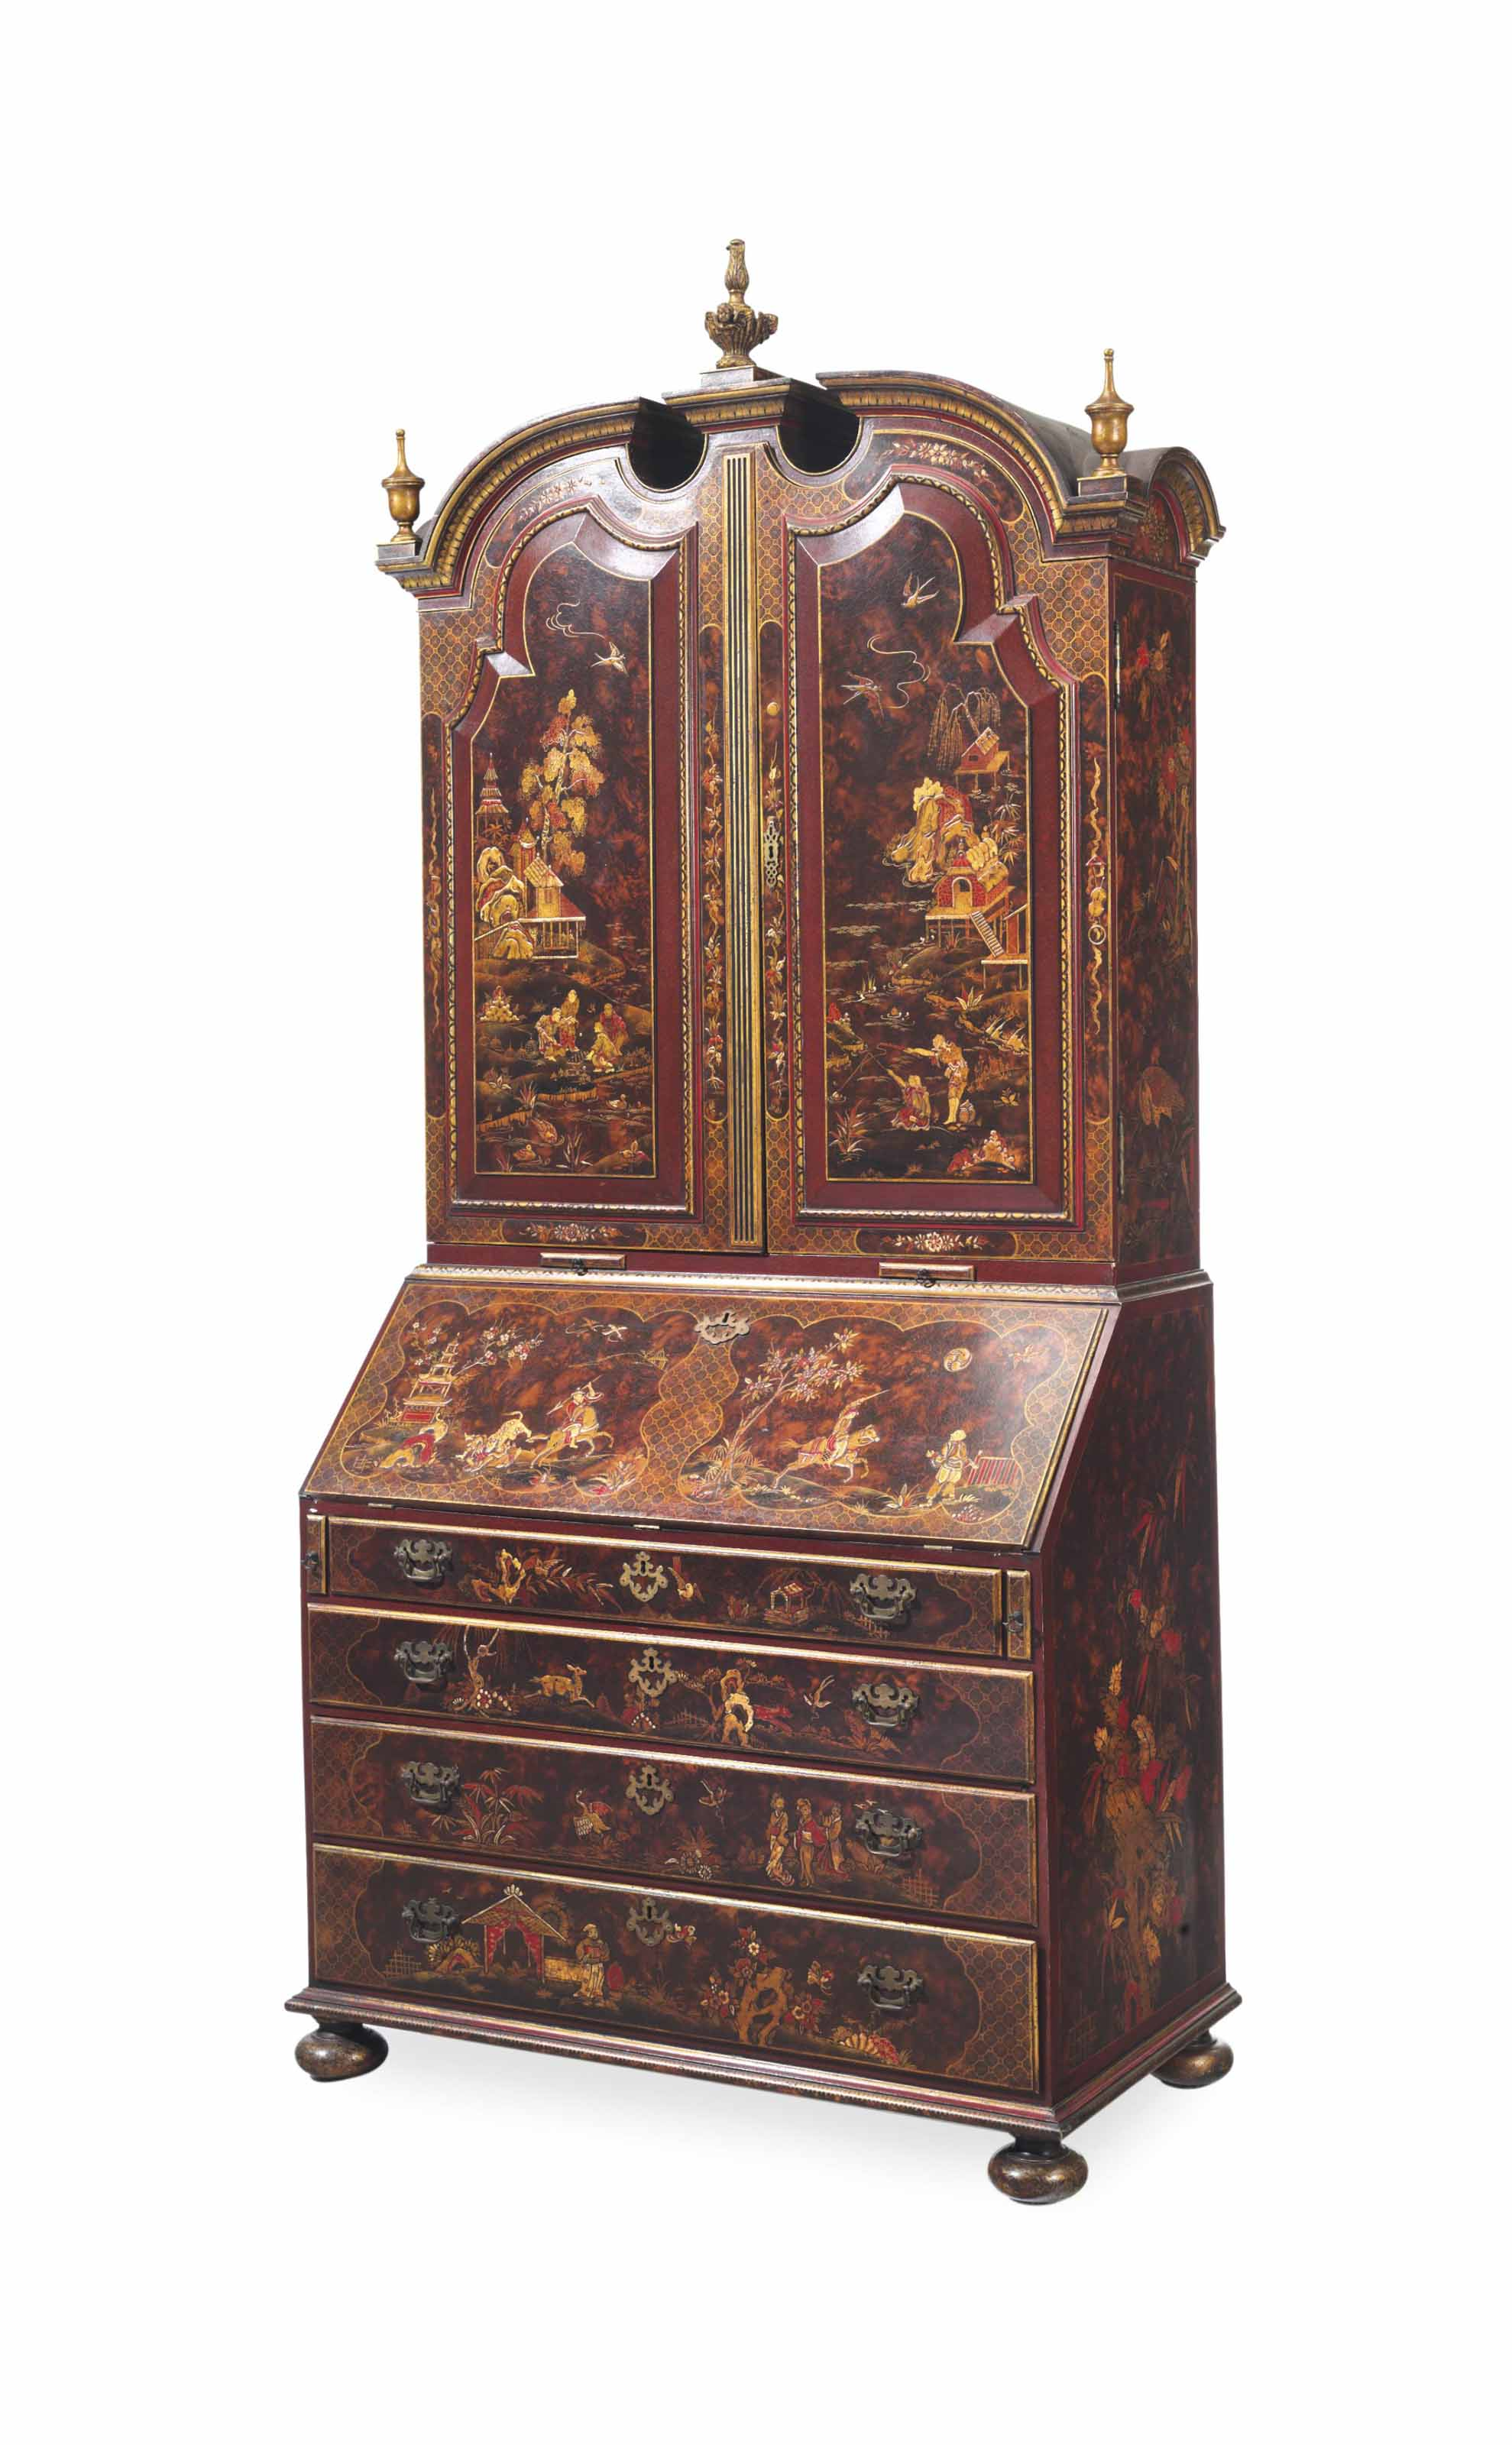 AN ENGLISH FAUX PAINTED AND PERSIMMON-JAPANNED SECRETAIRE BOOKCASE,